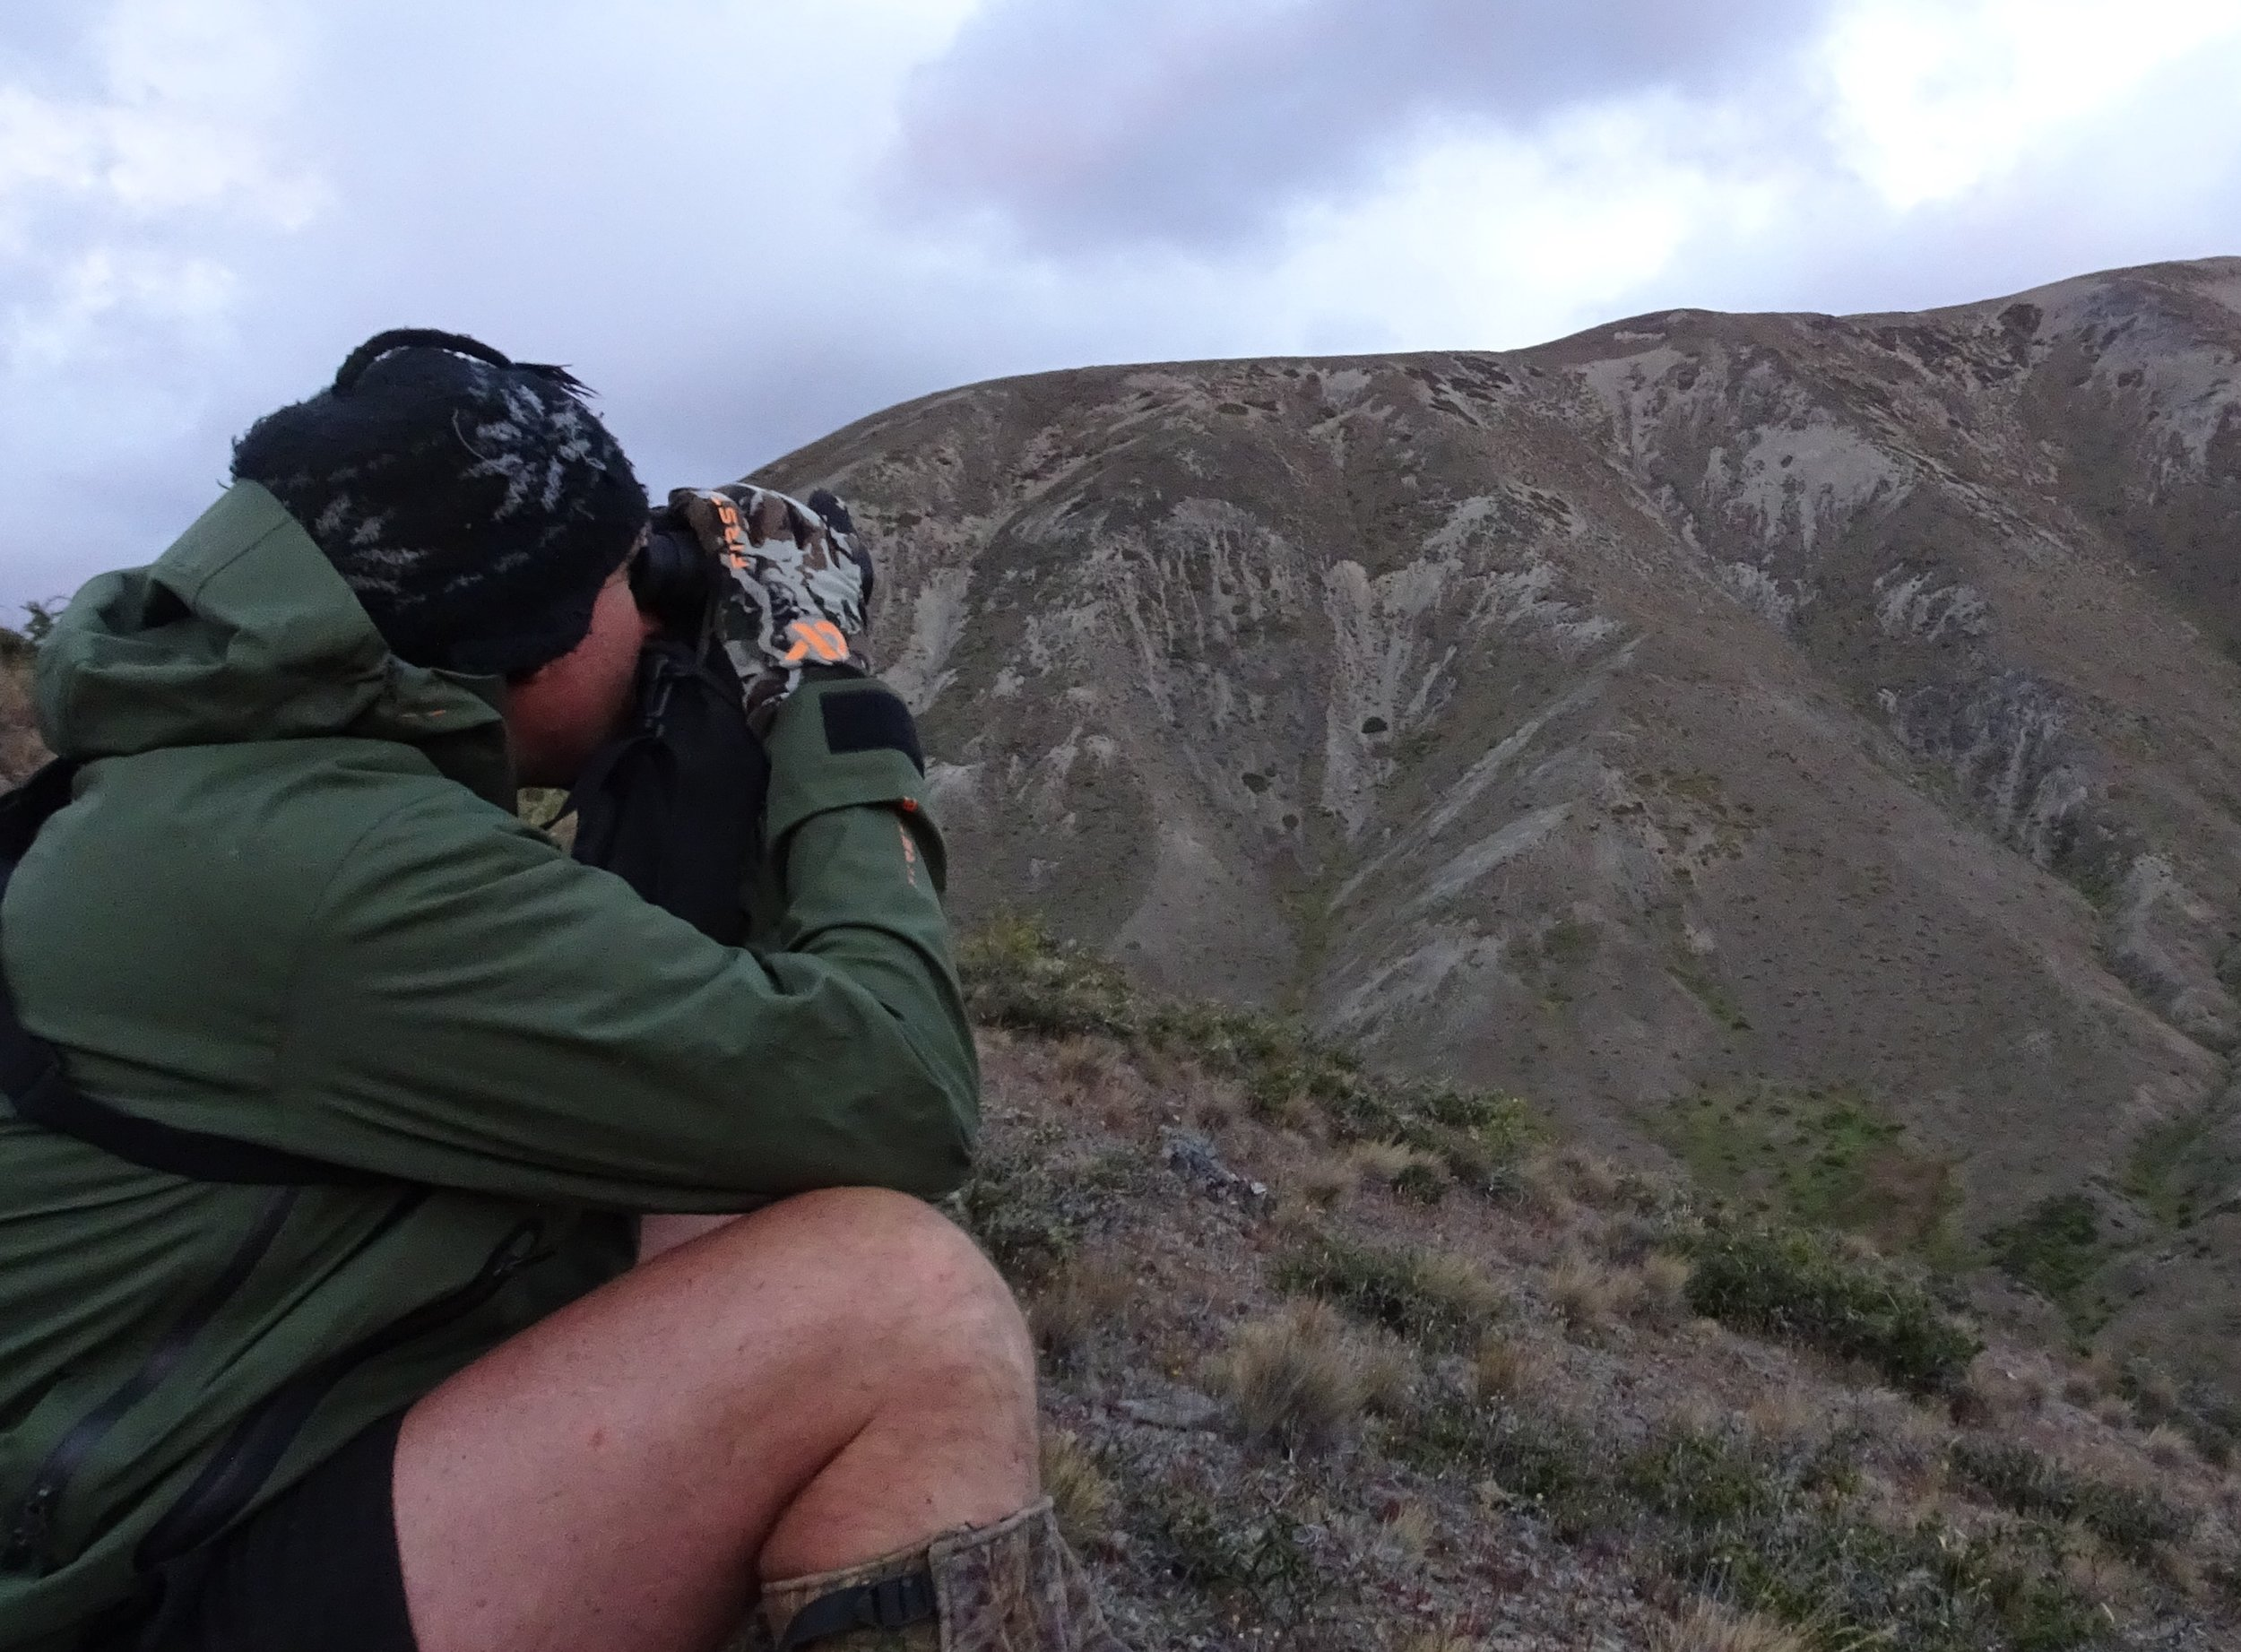 Shaun Monk sitting in the strong wind to spot into the sheltered gully heads, the First Lite merino gloves and the plain green  Seak Stormtight  packable jacket kept the showers and wind at bay. The jackets big under arm vents were great to zip open when climbing hard in the heat.